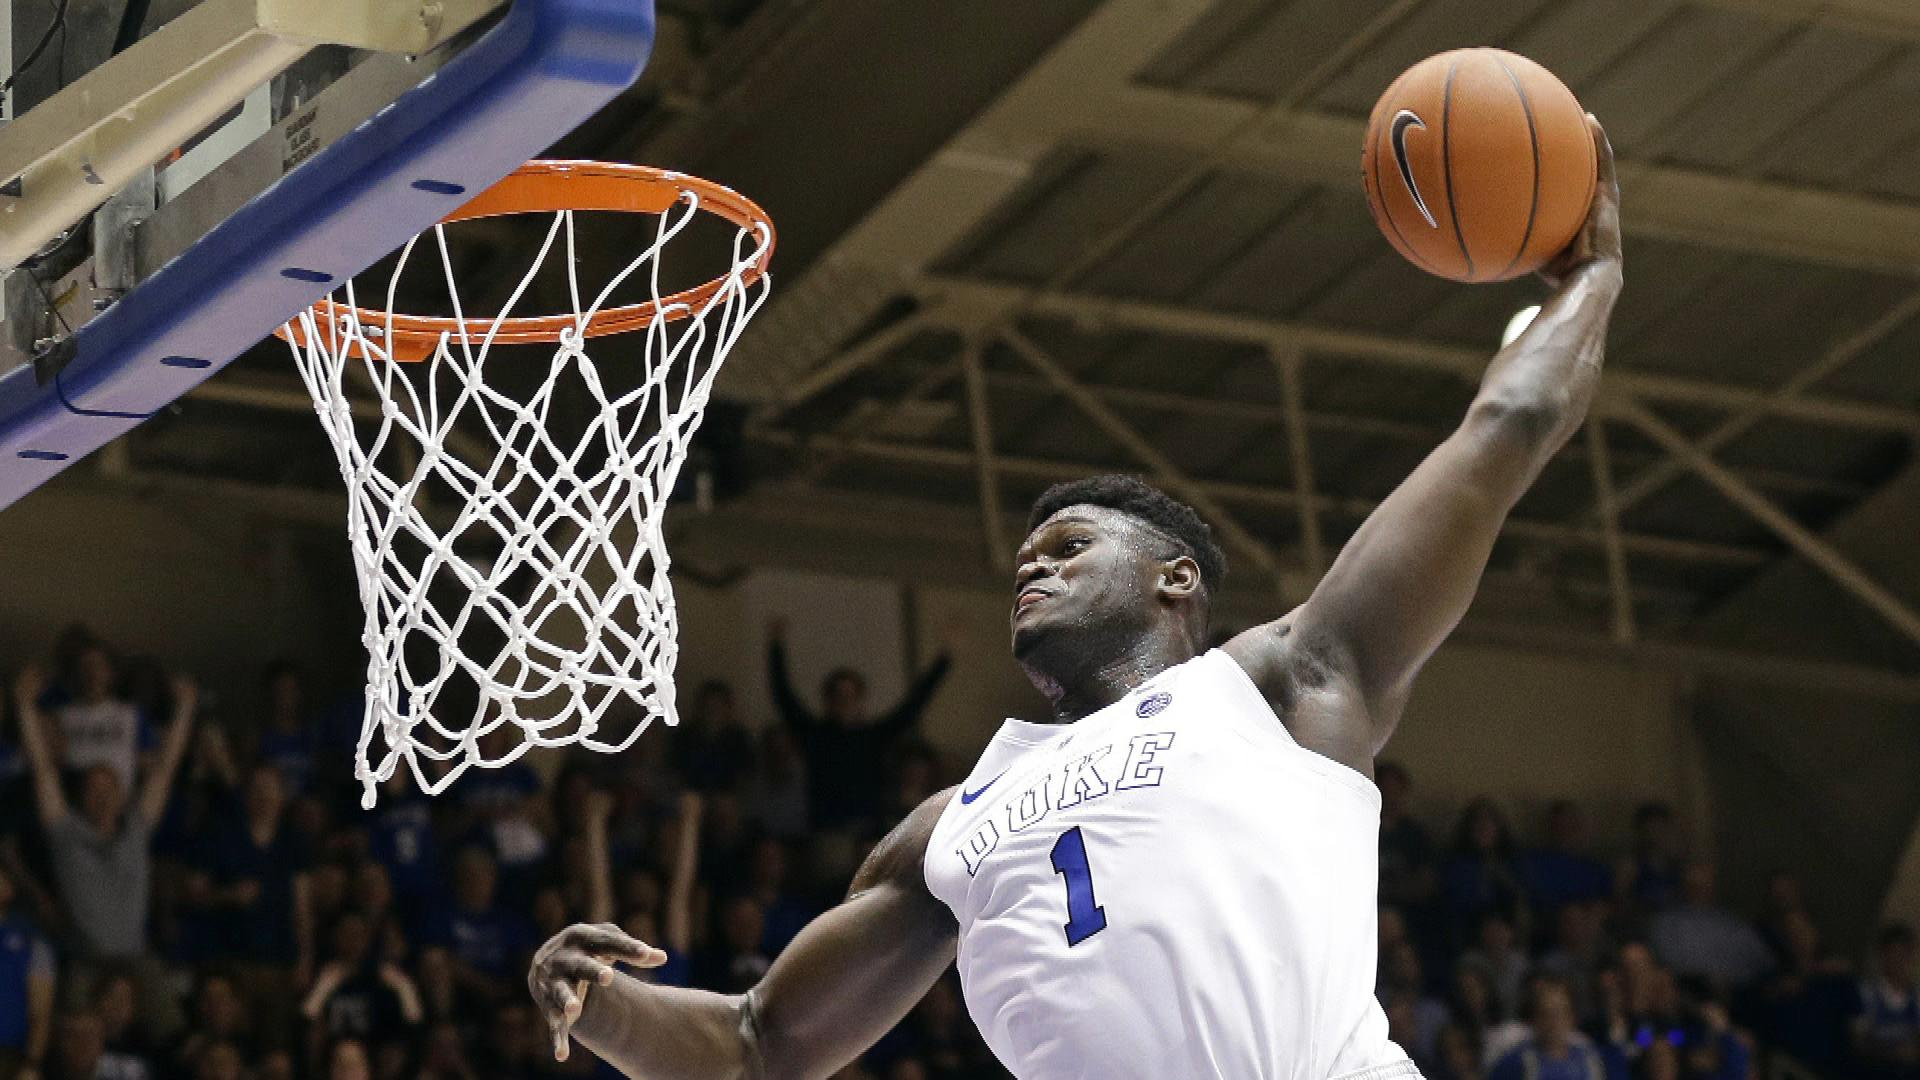 Georgetown's Patrick Ewing says Duke's Zion Williamson should play